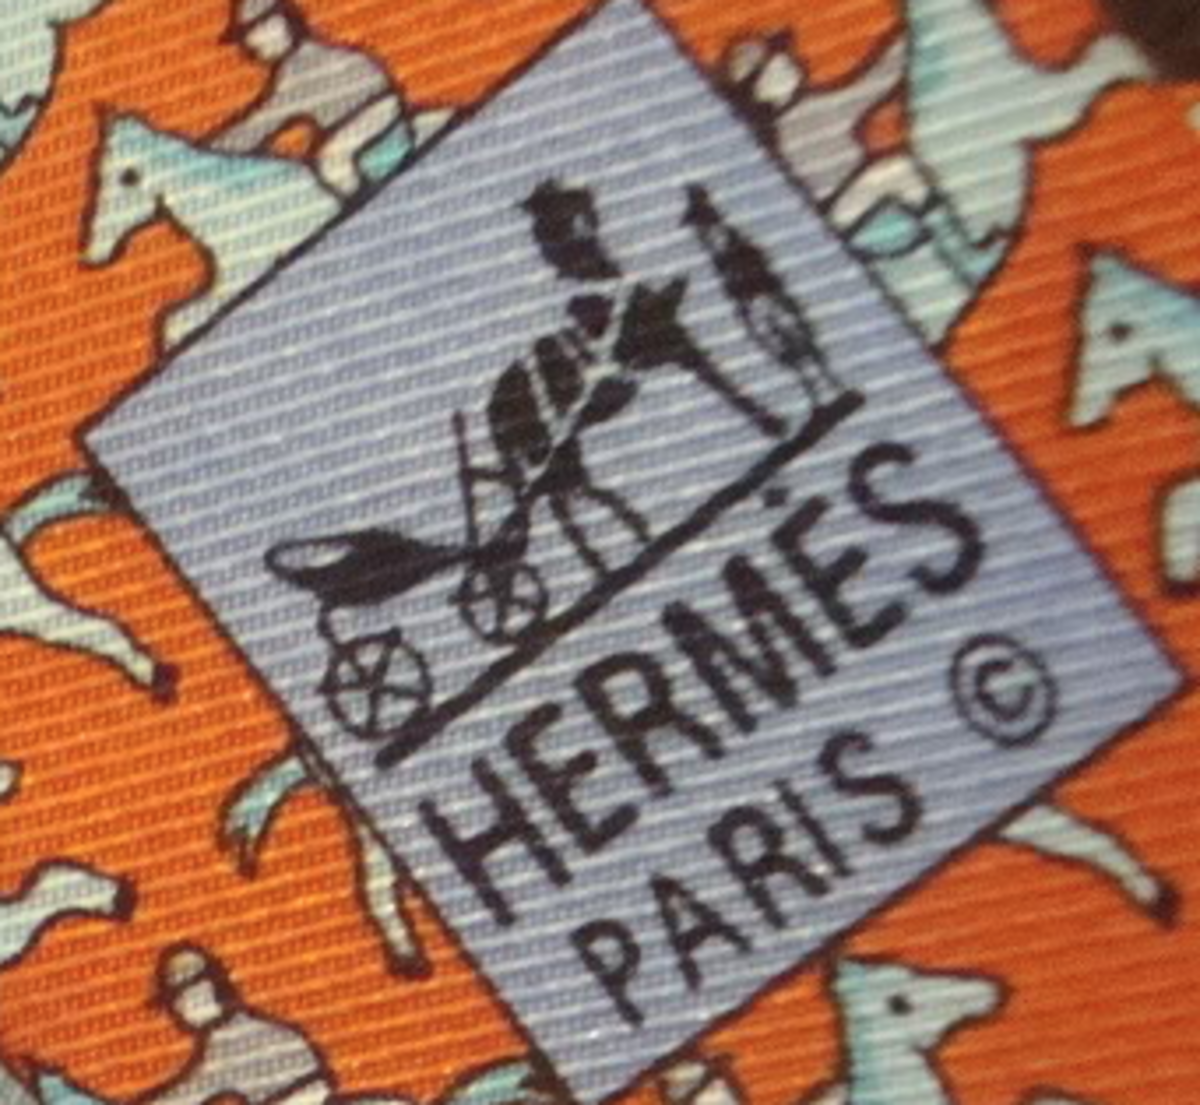 Look at the twill direction.  It is not running 11 to 5.  It is more East-to-West than a genuine Hermes tie.